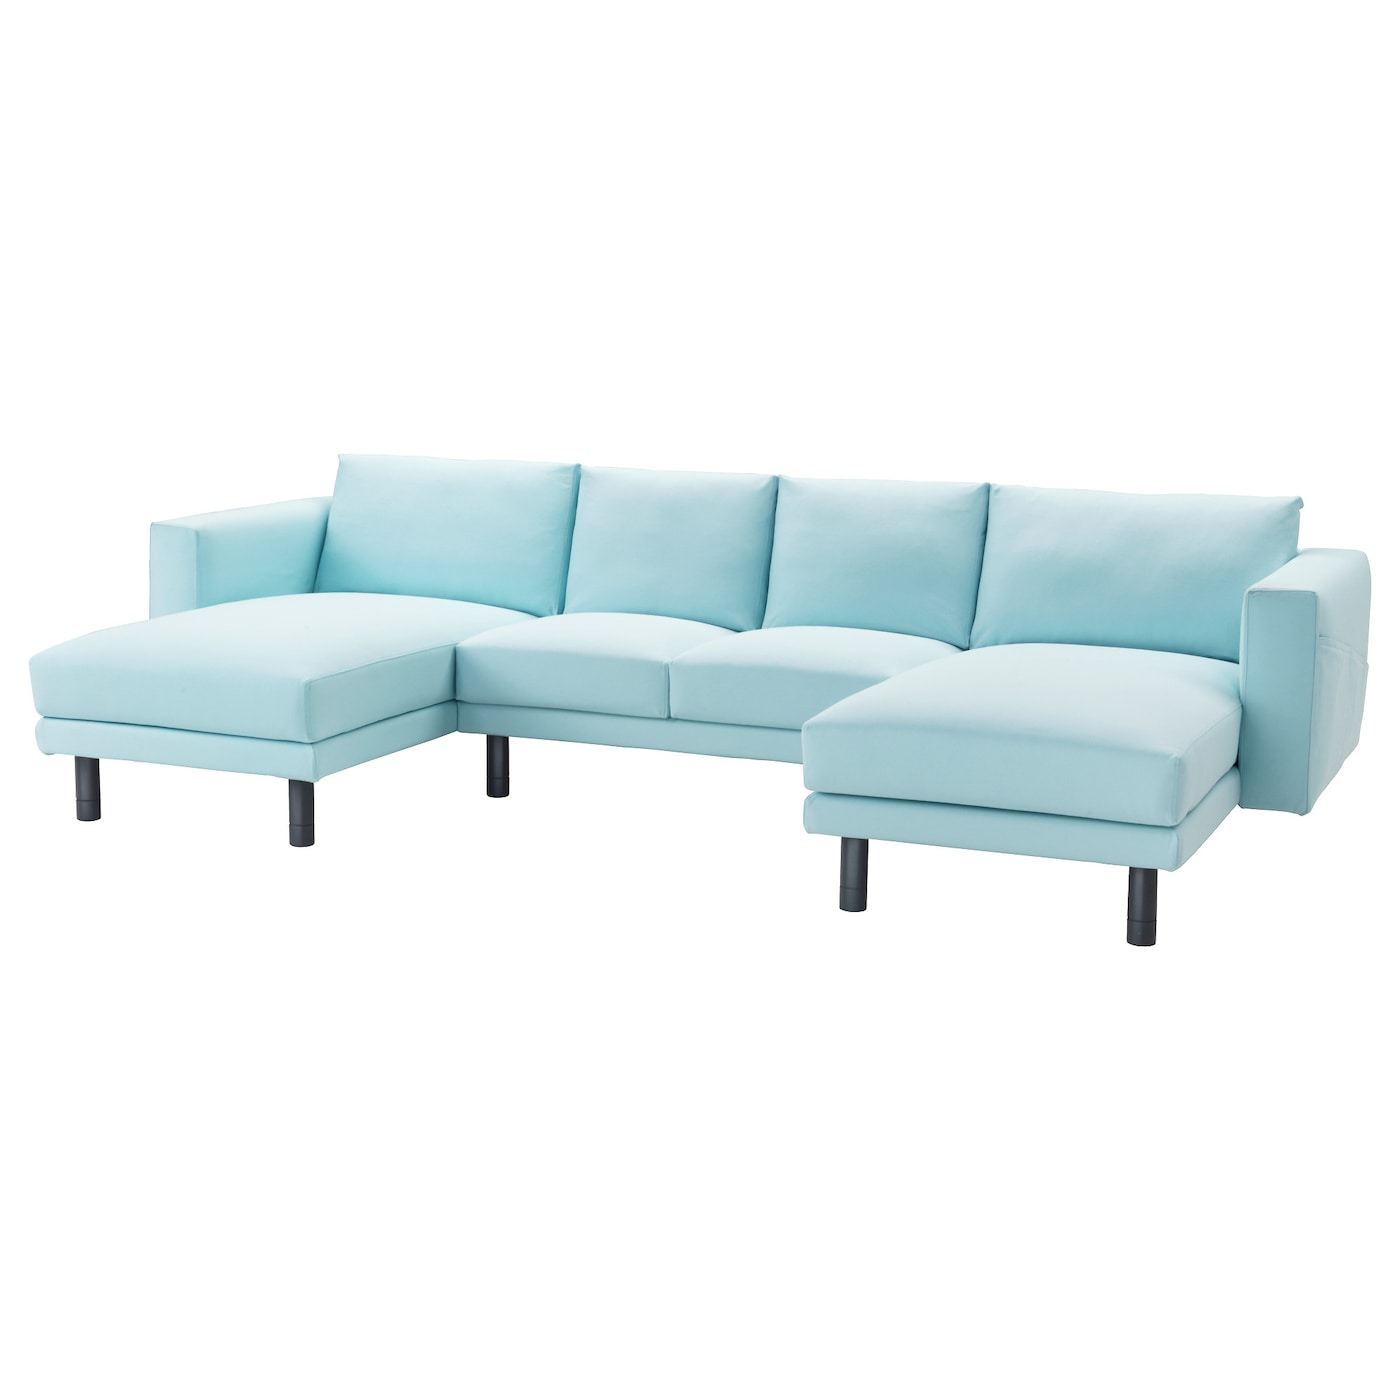 Norsborg 2 Seat Sofa With 2 Chaise Longues Gr Sbo Light